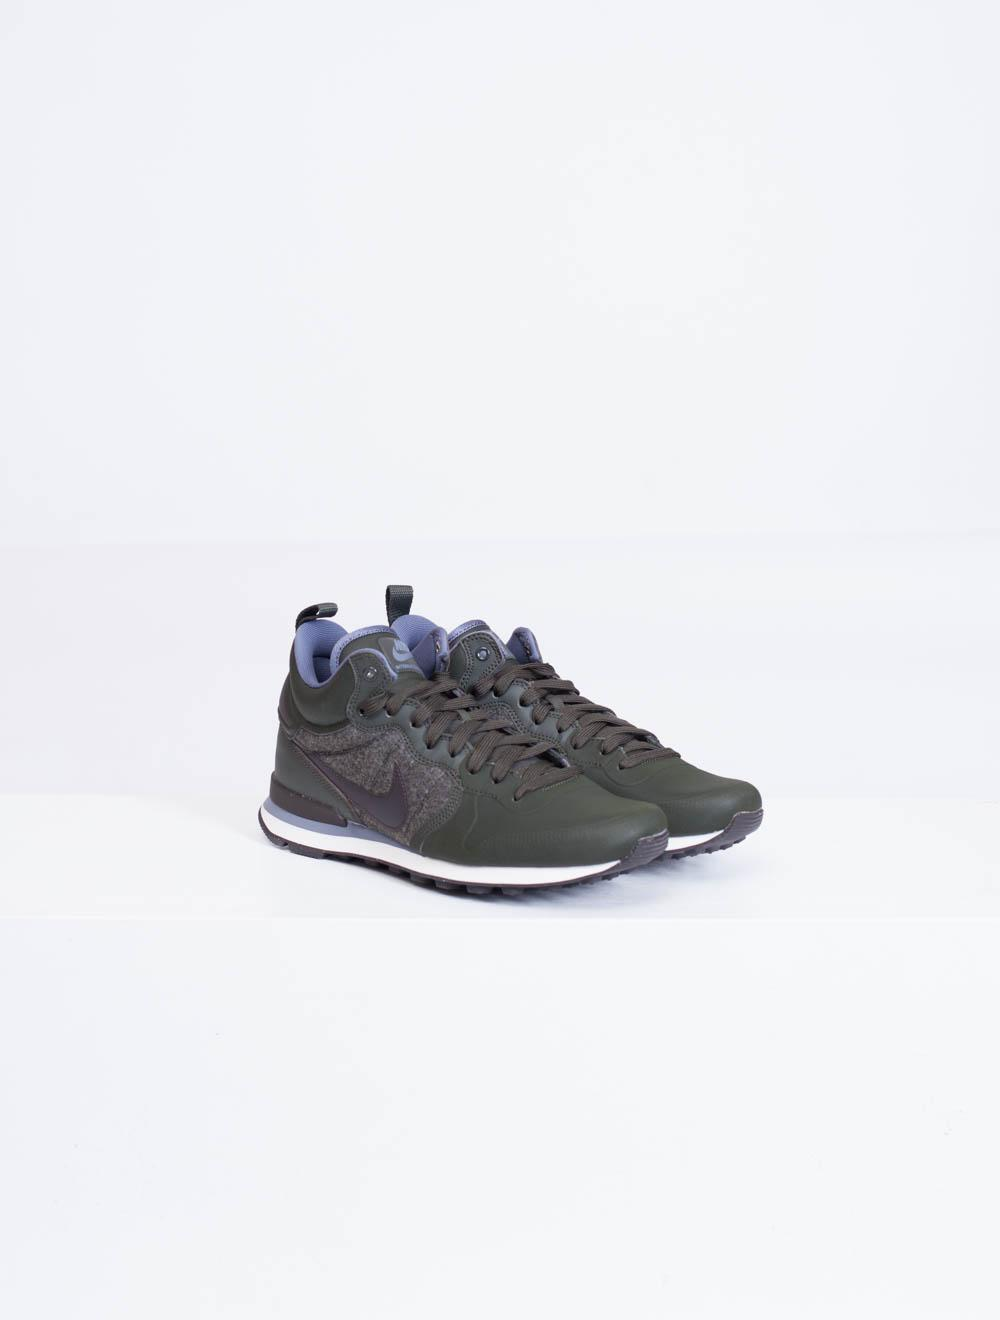 best loved 0a761 ee2b6 ... canada where can i buy nike internationalist utility sneakers 60e1d  366f7 0db89 d8b21